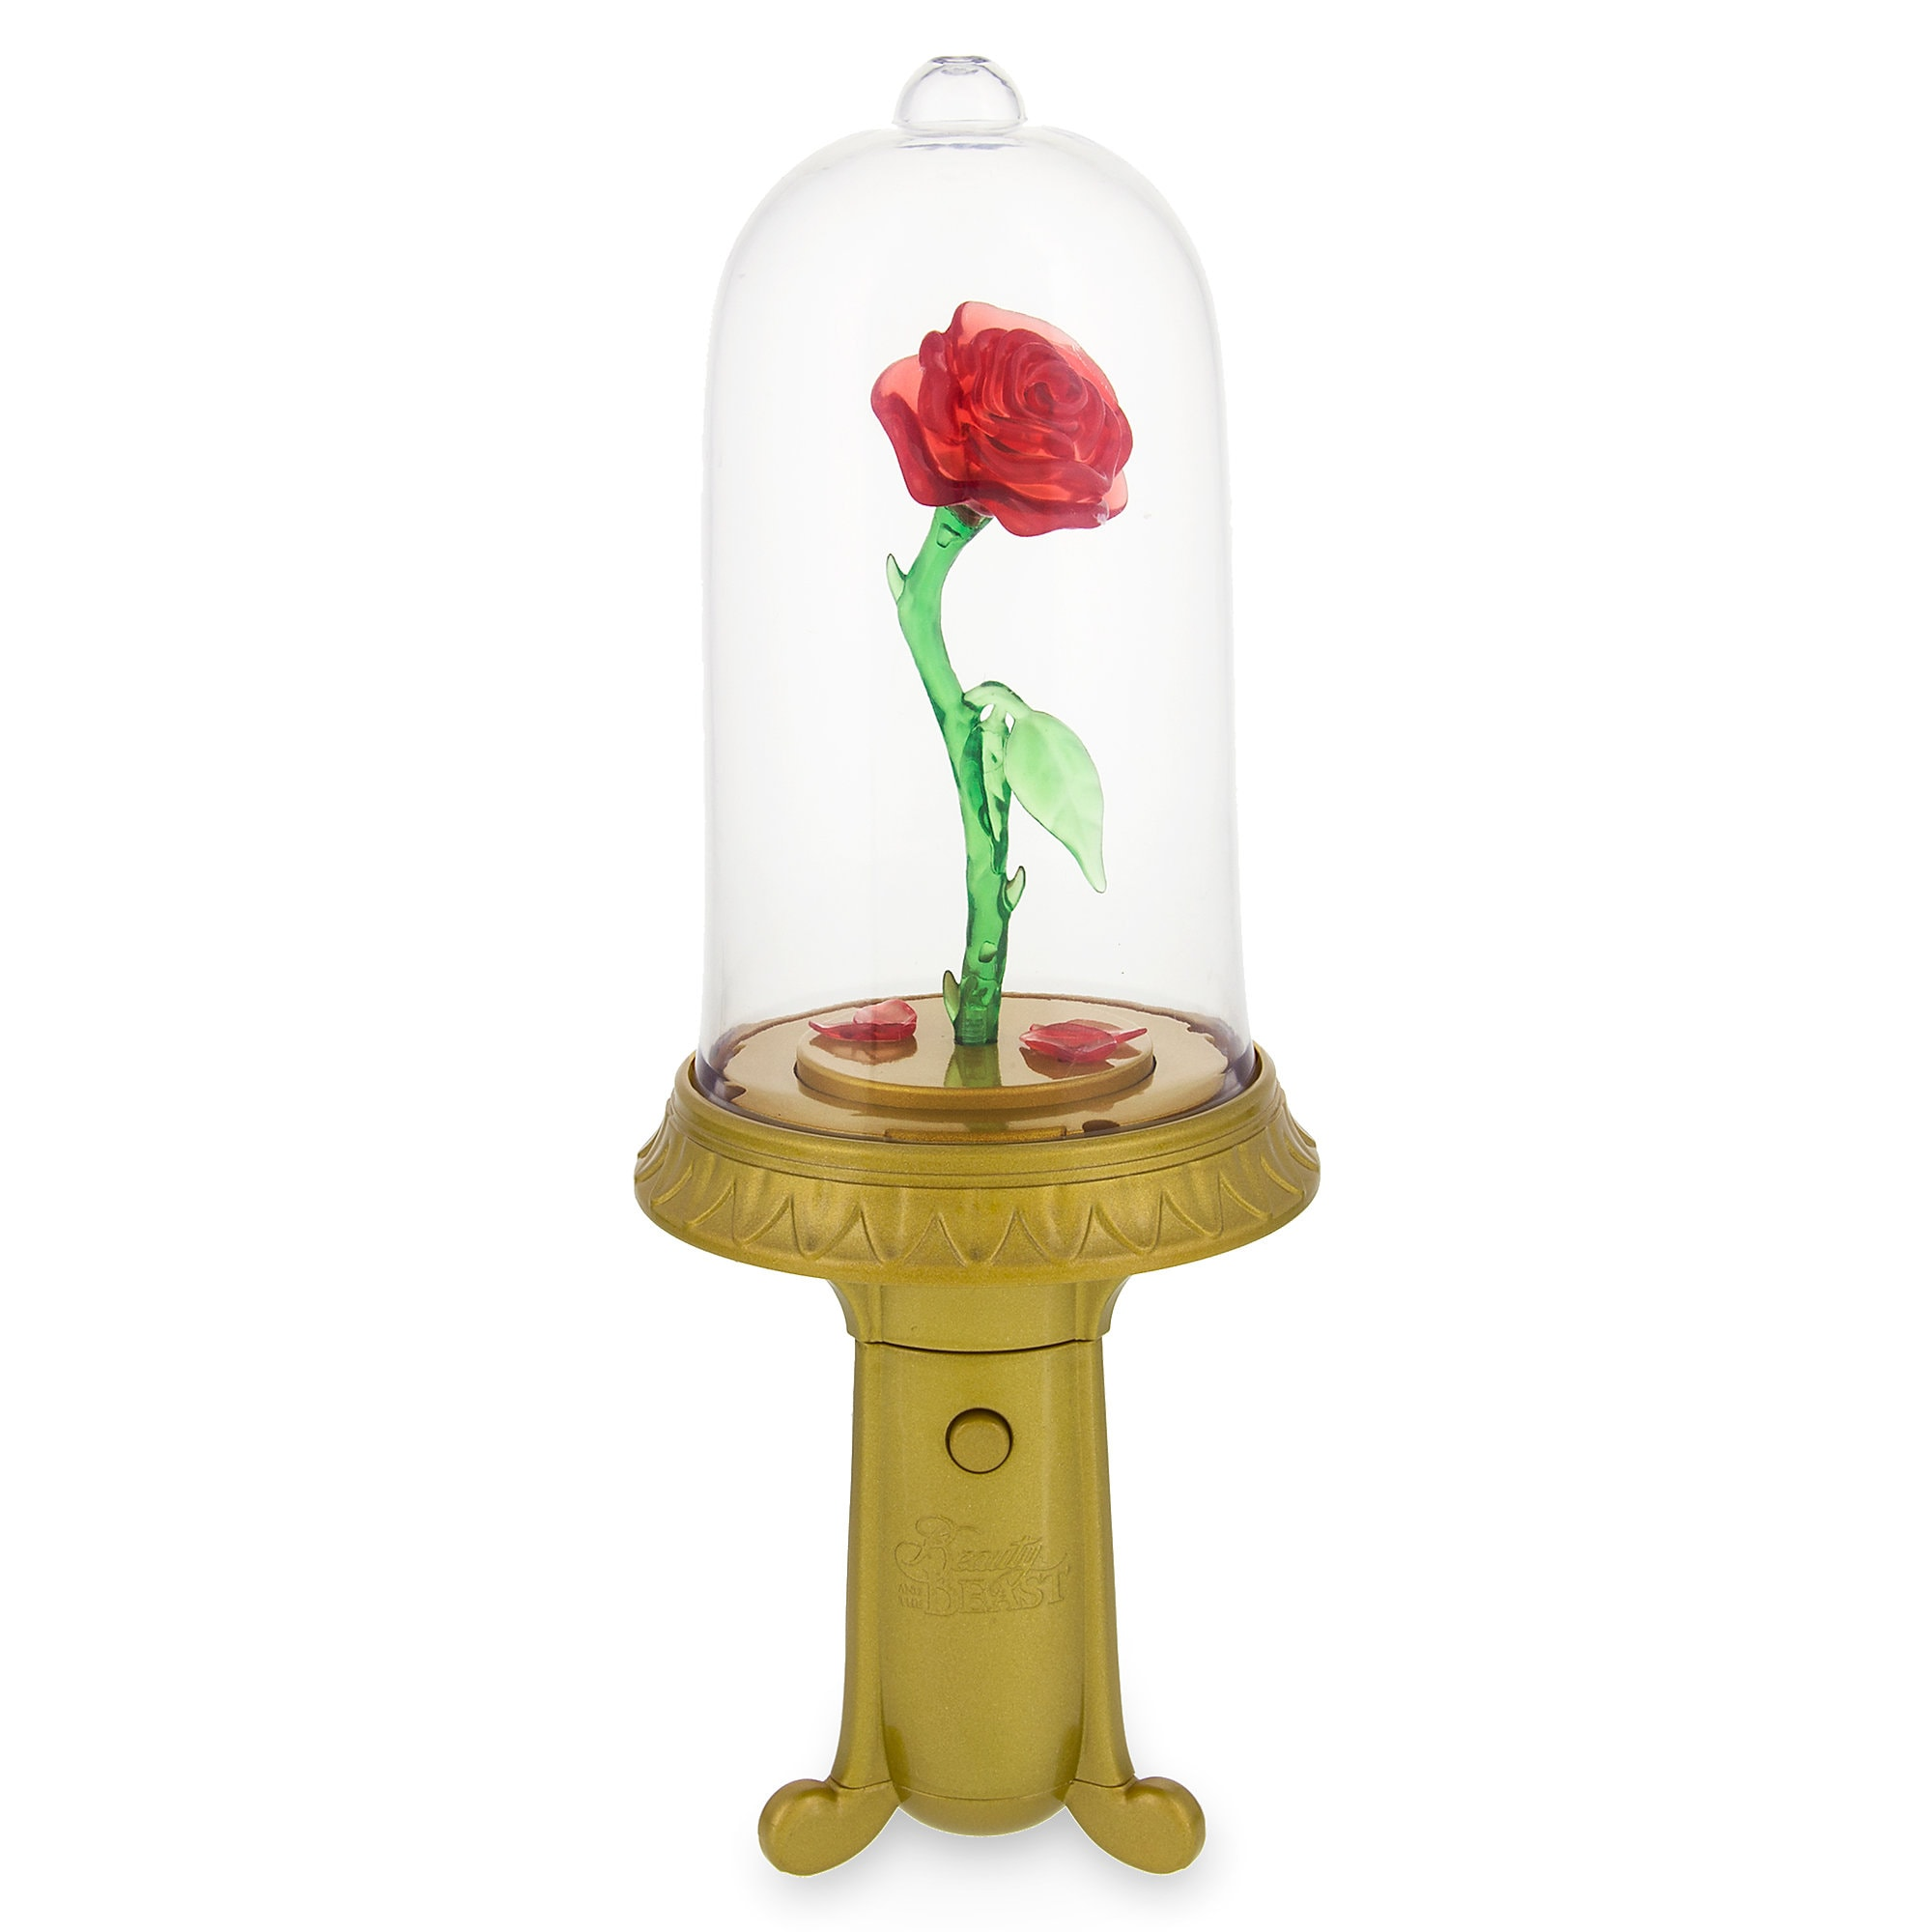 Enchanted Rose Light-Up Spinner - Beauty and the Beast